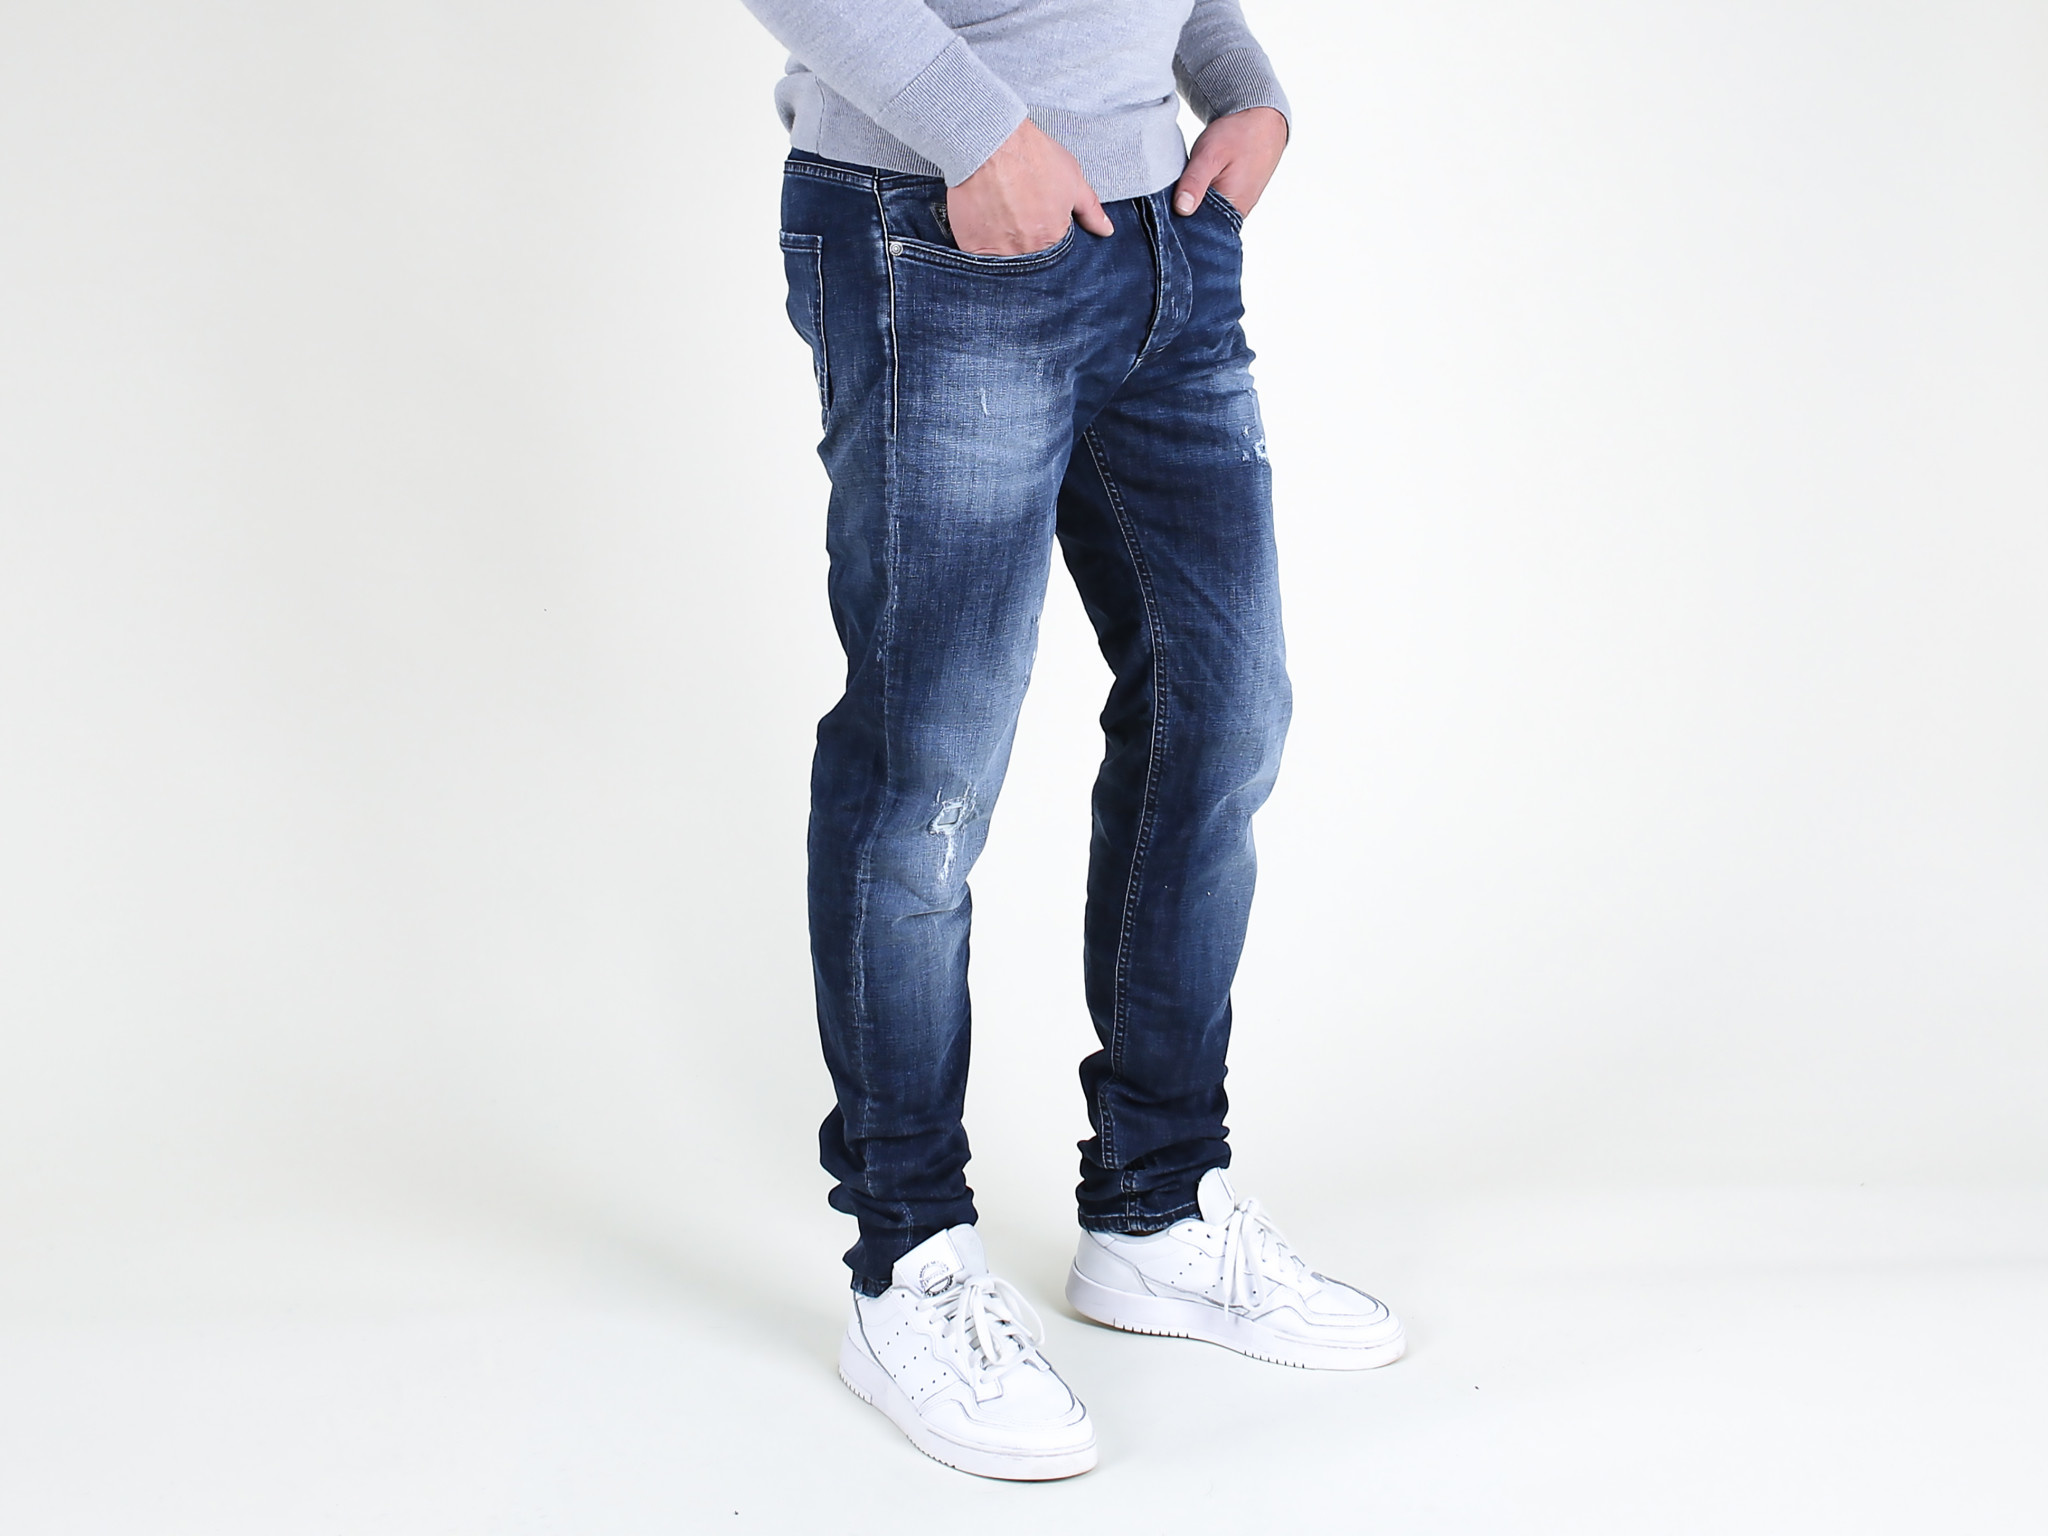 Fifty Four Fifty Four Rages JD81 T41 Jeans Damaged Blue